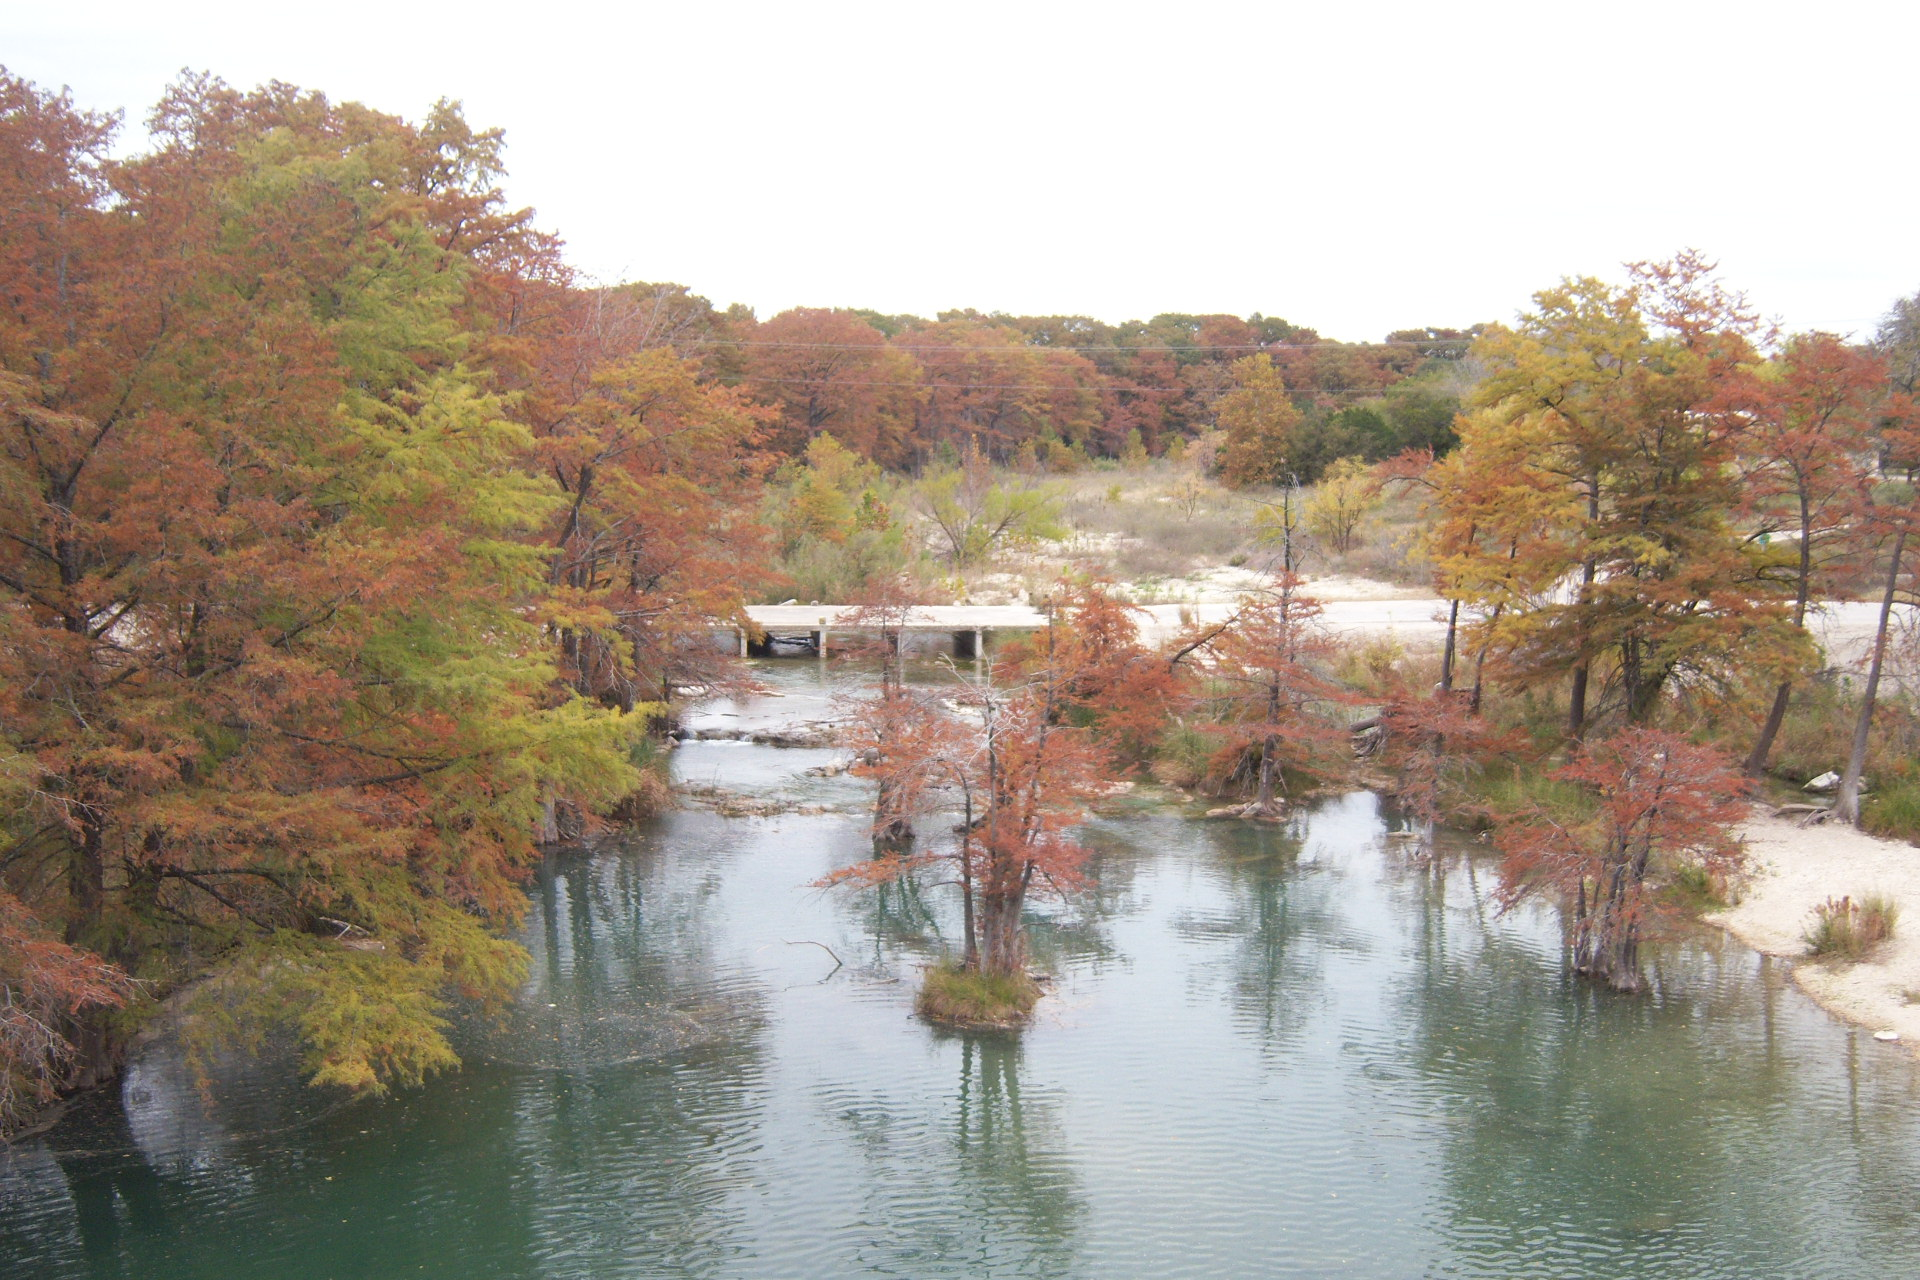 Texas hill country fall foliage motorcycle ride november 2012 the